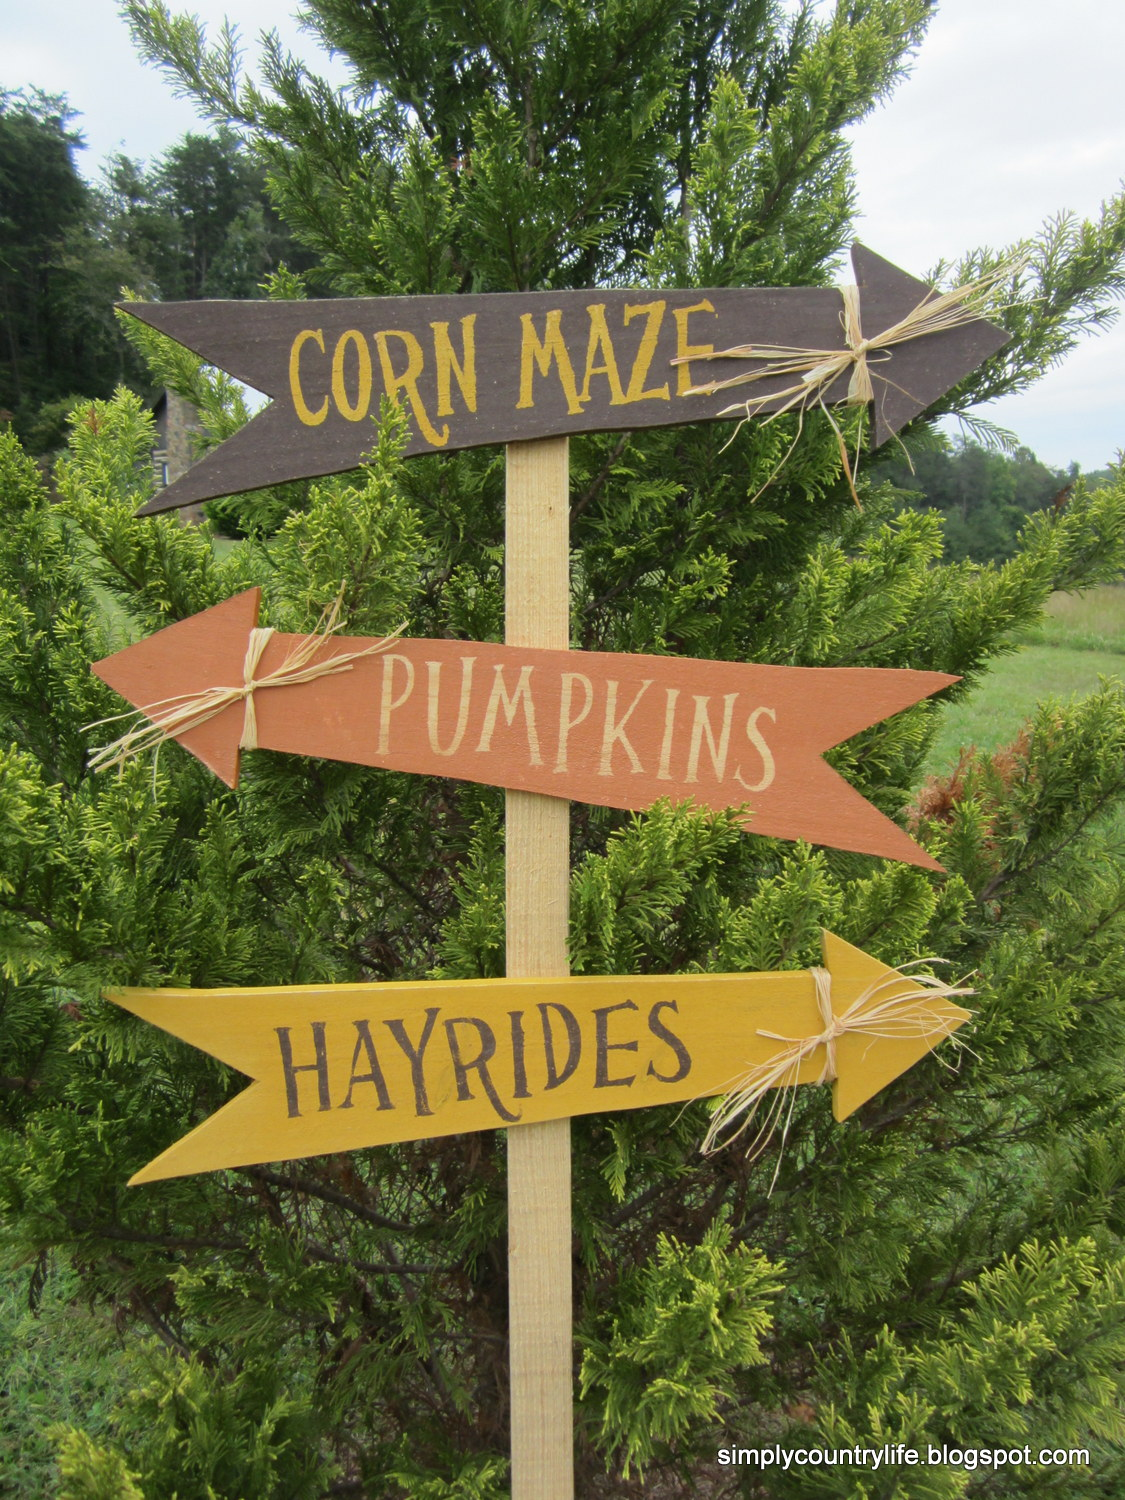 Simply Country Life: Scrap Wood turned into Fall Yard Signs